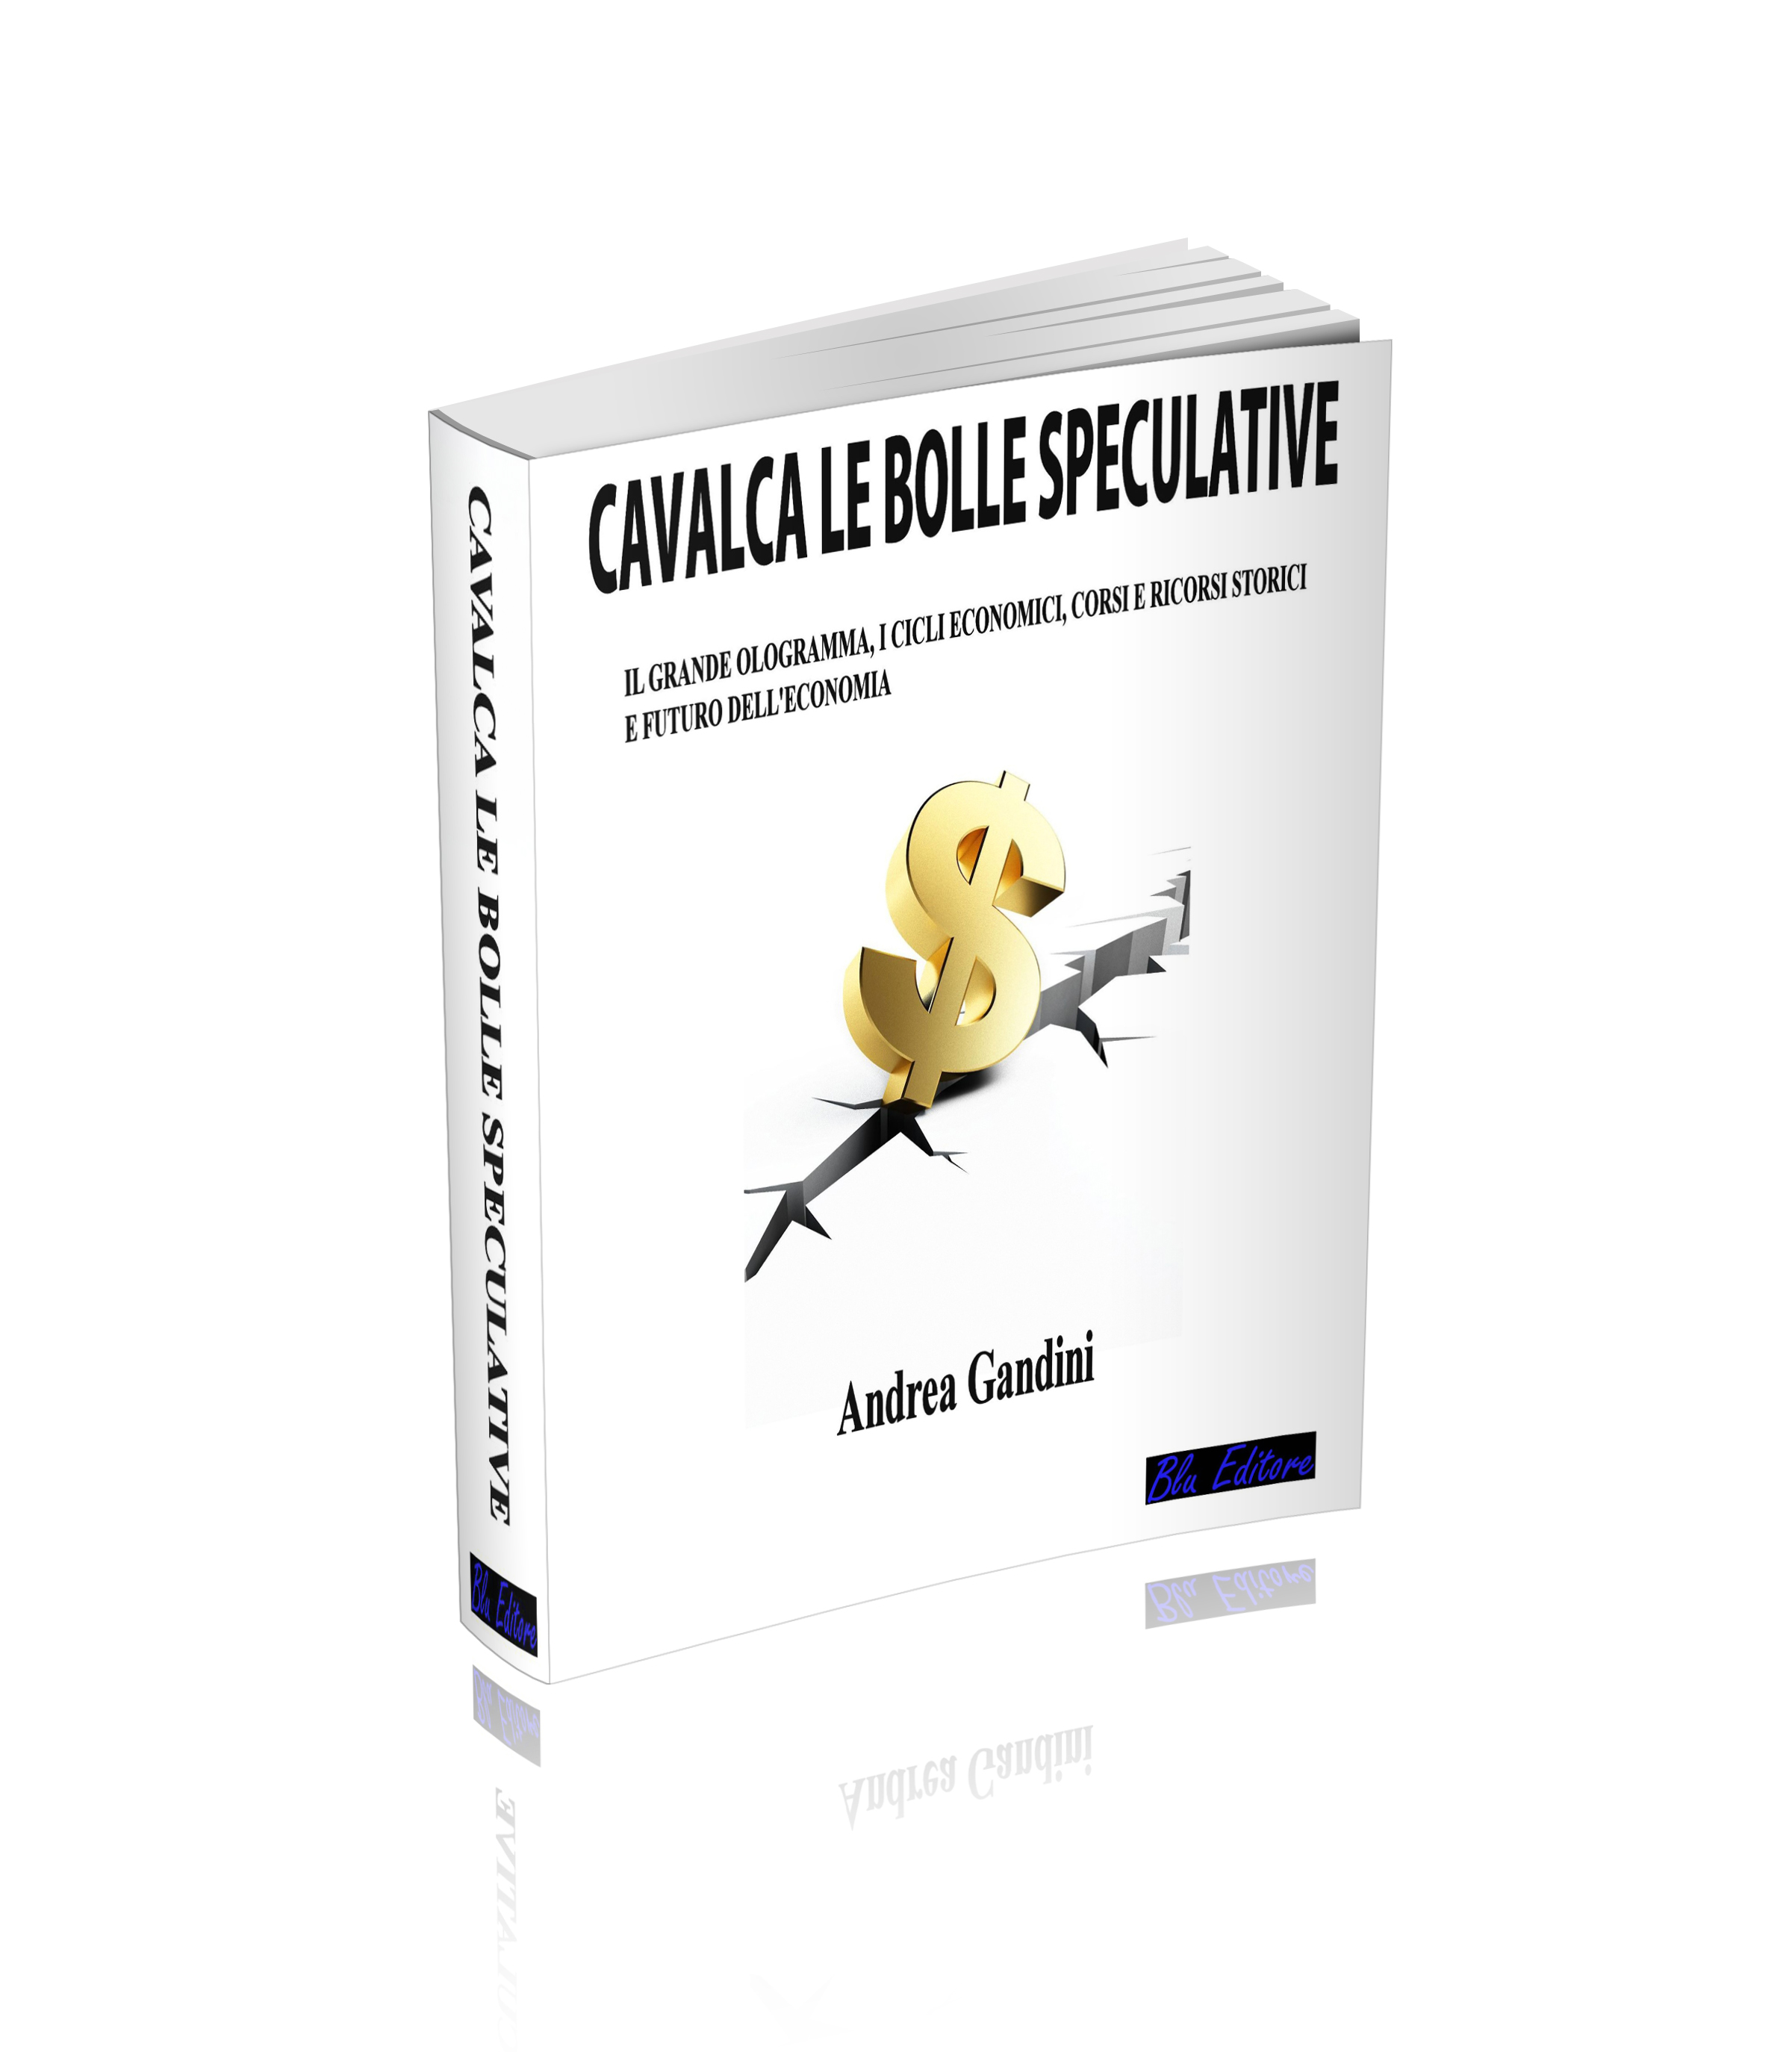 Cavalca le bolle speculative